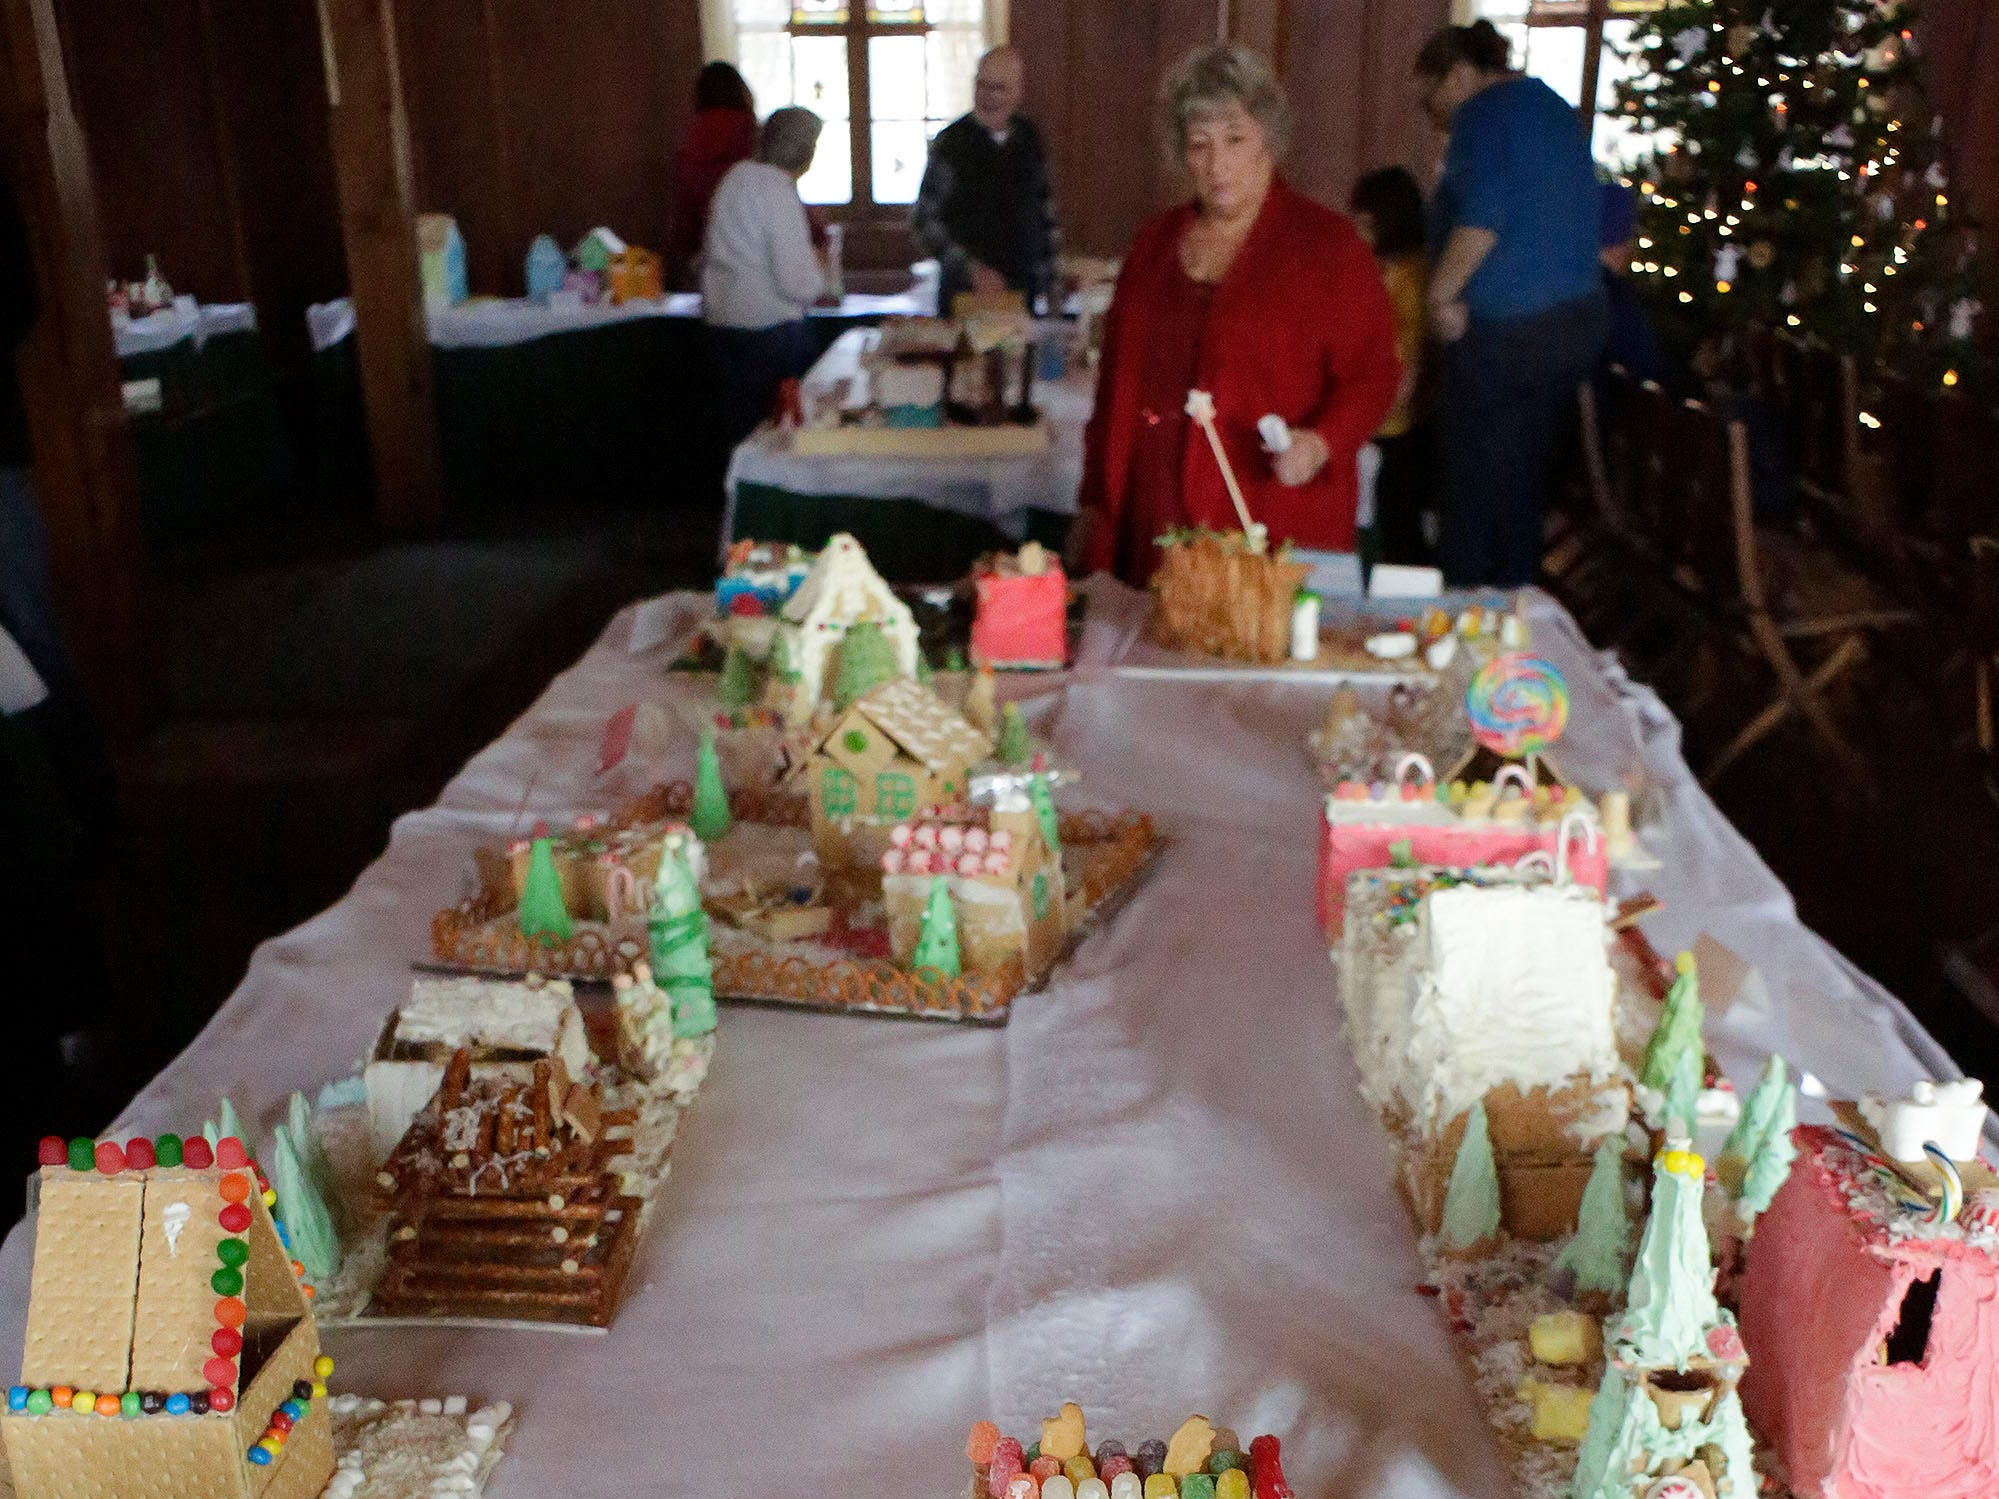 A woman inspects a display at the annual Gingerbread Festival, Saturday, December 8, 2018, in Kohler, Wis.